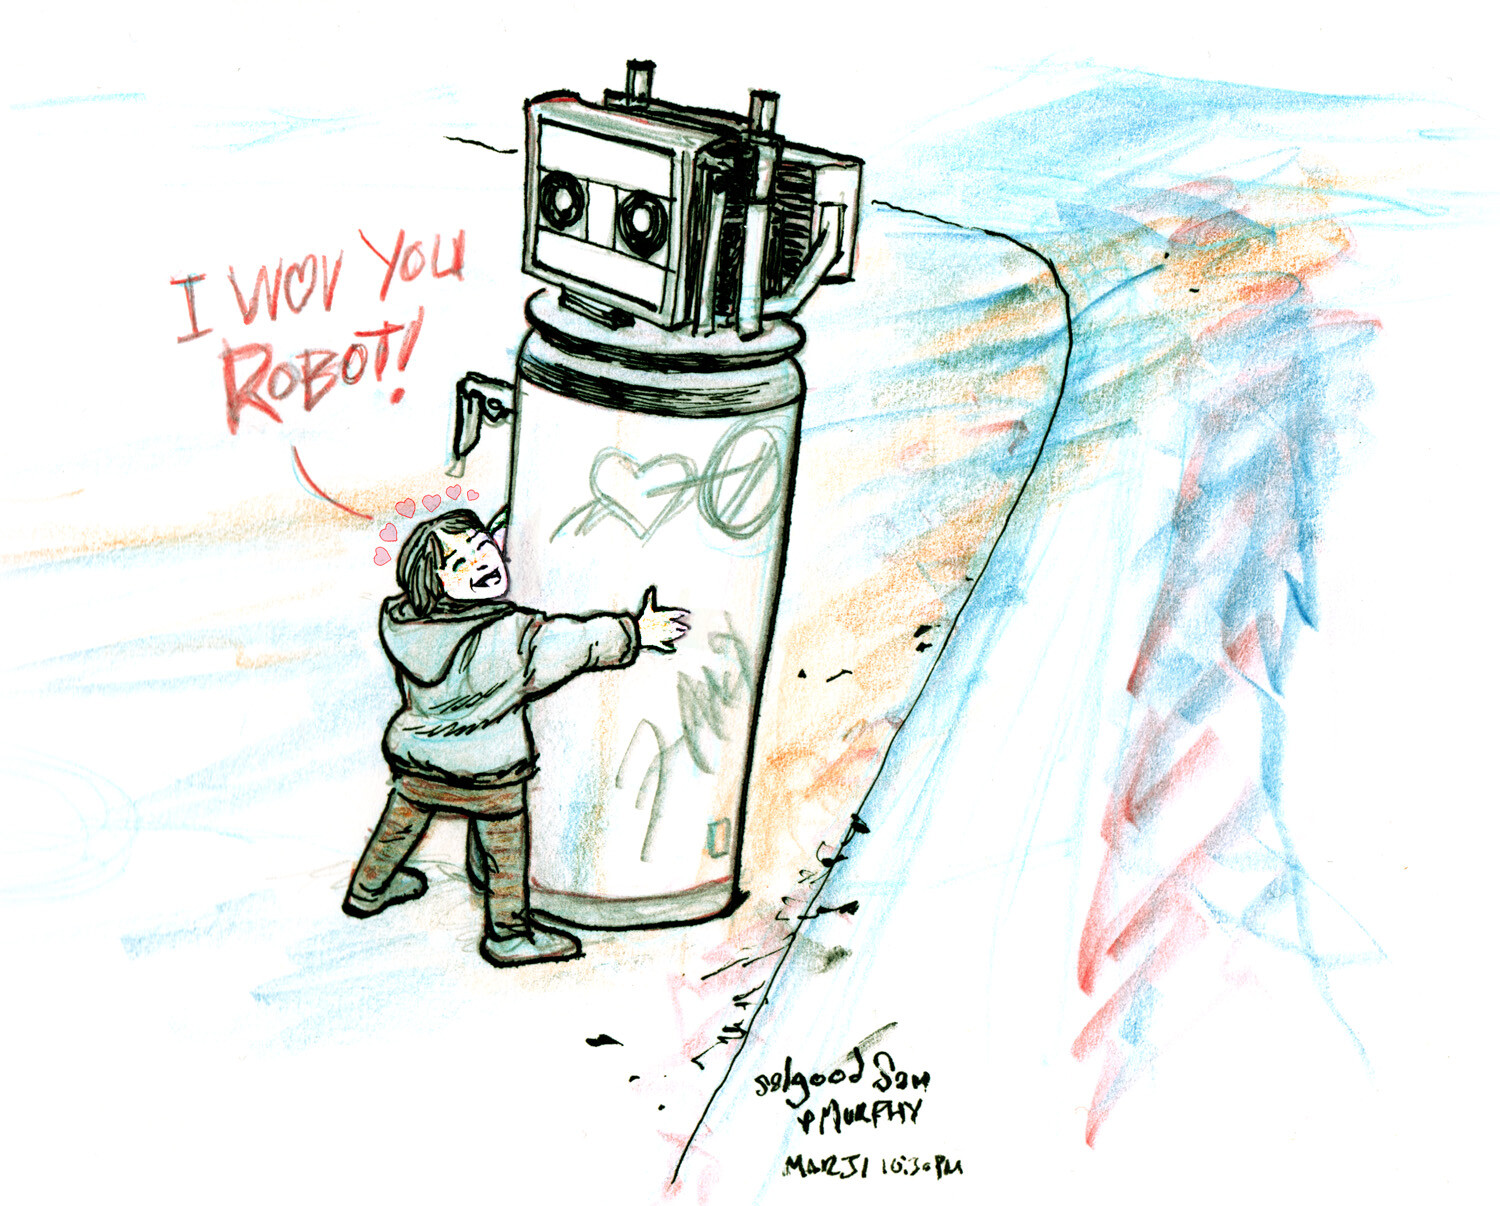 I wove you robot, inspired by a viral YouTube clip. Personal work.